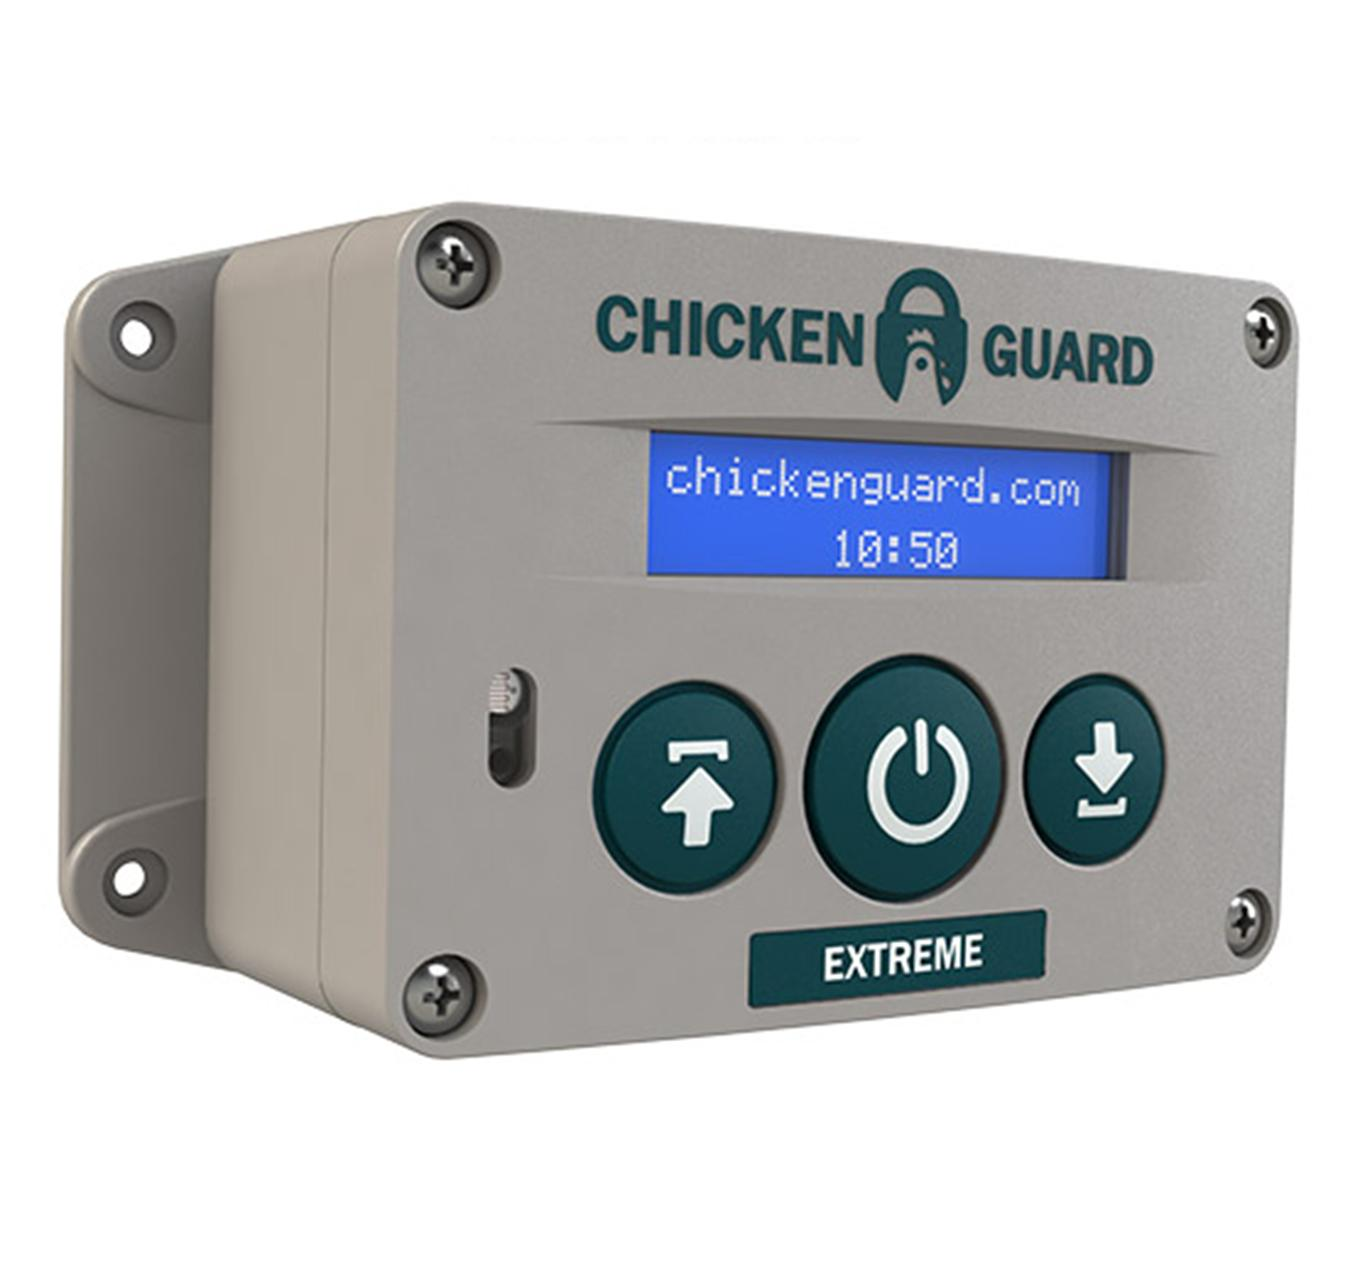 Chicken Guard Extreme